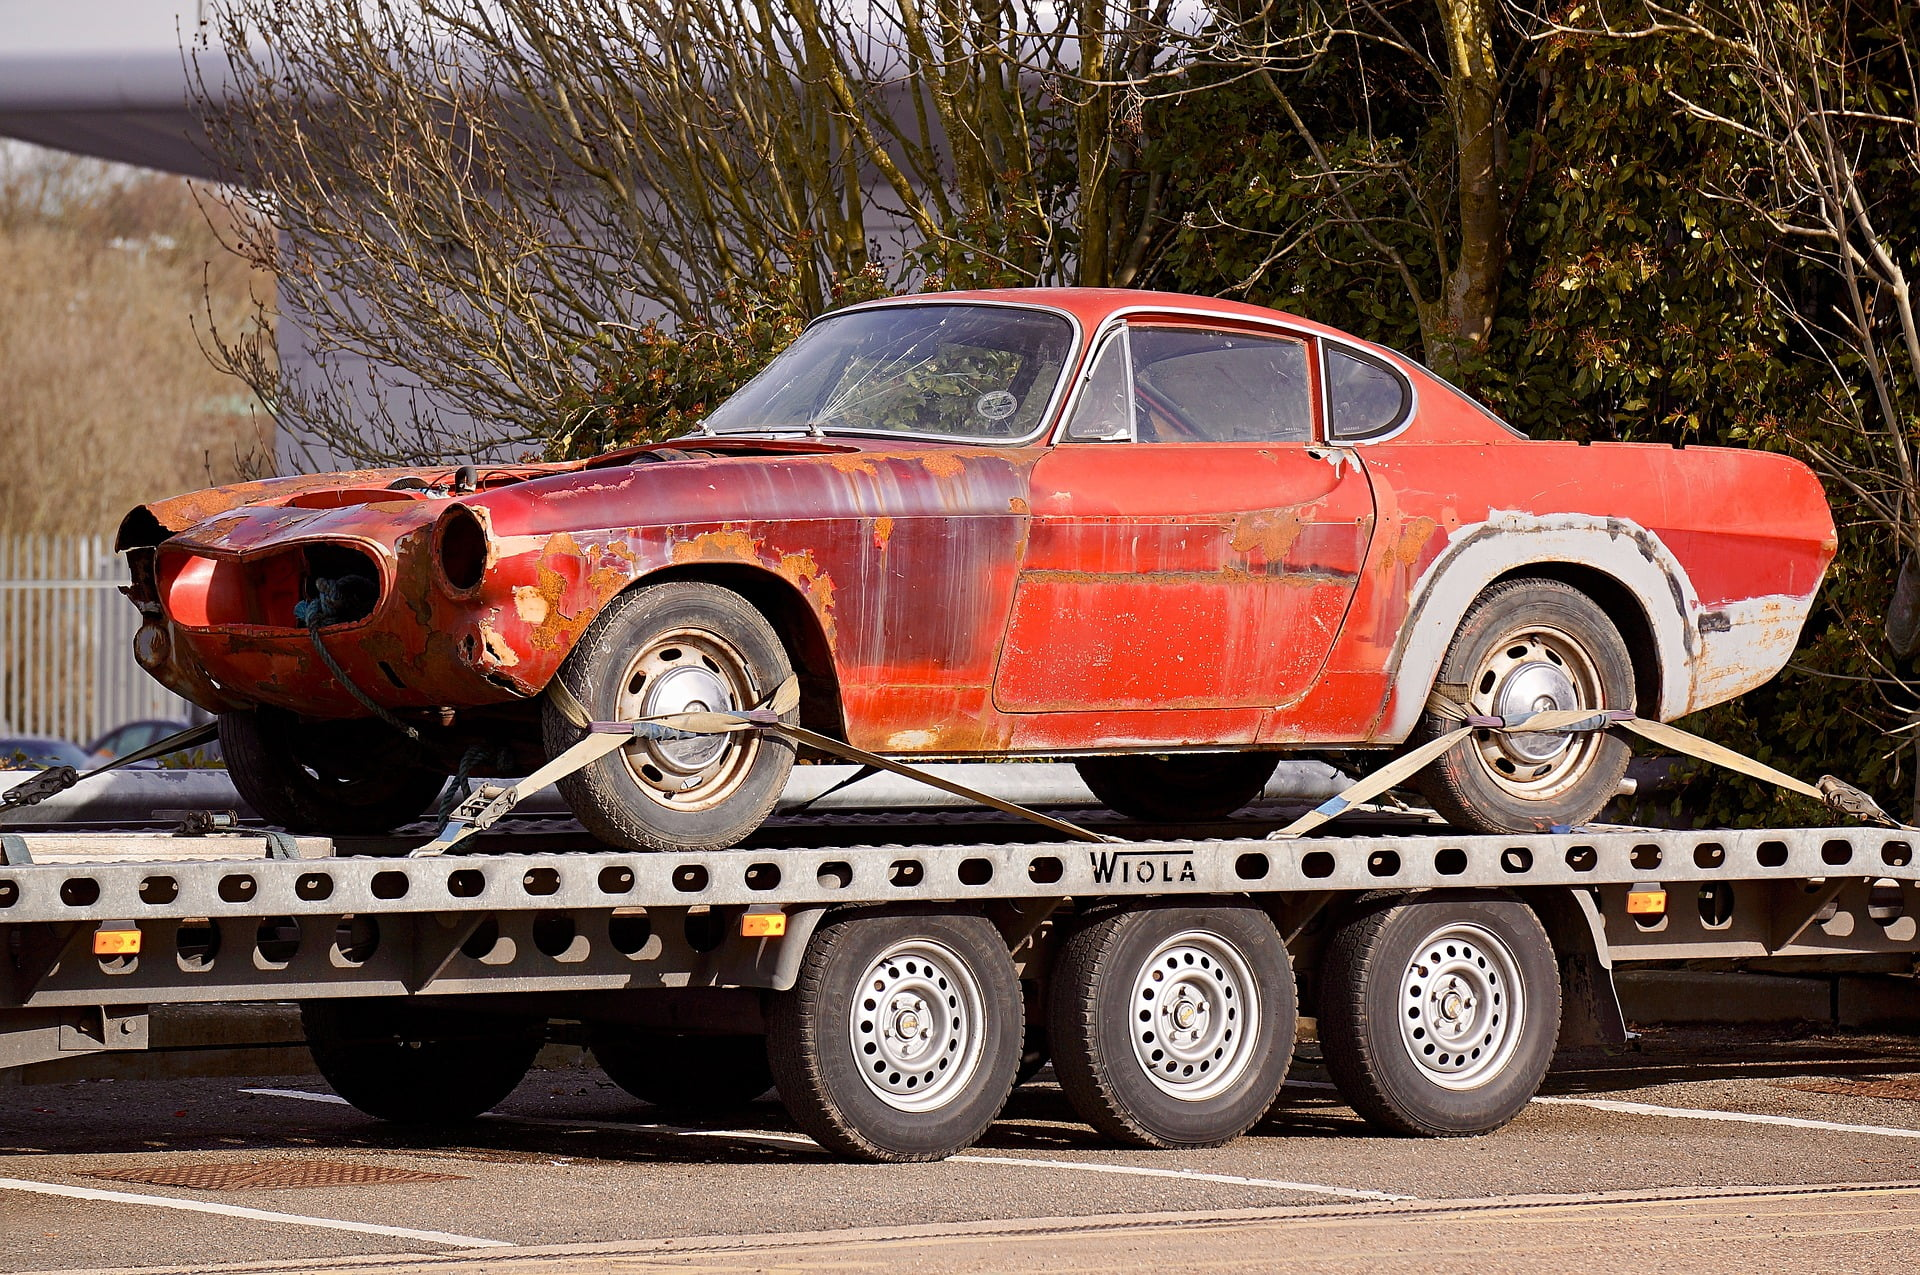 Damaged old car being towed by a truck